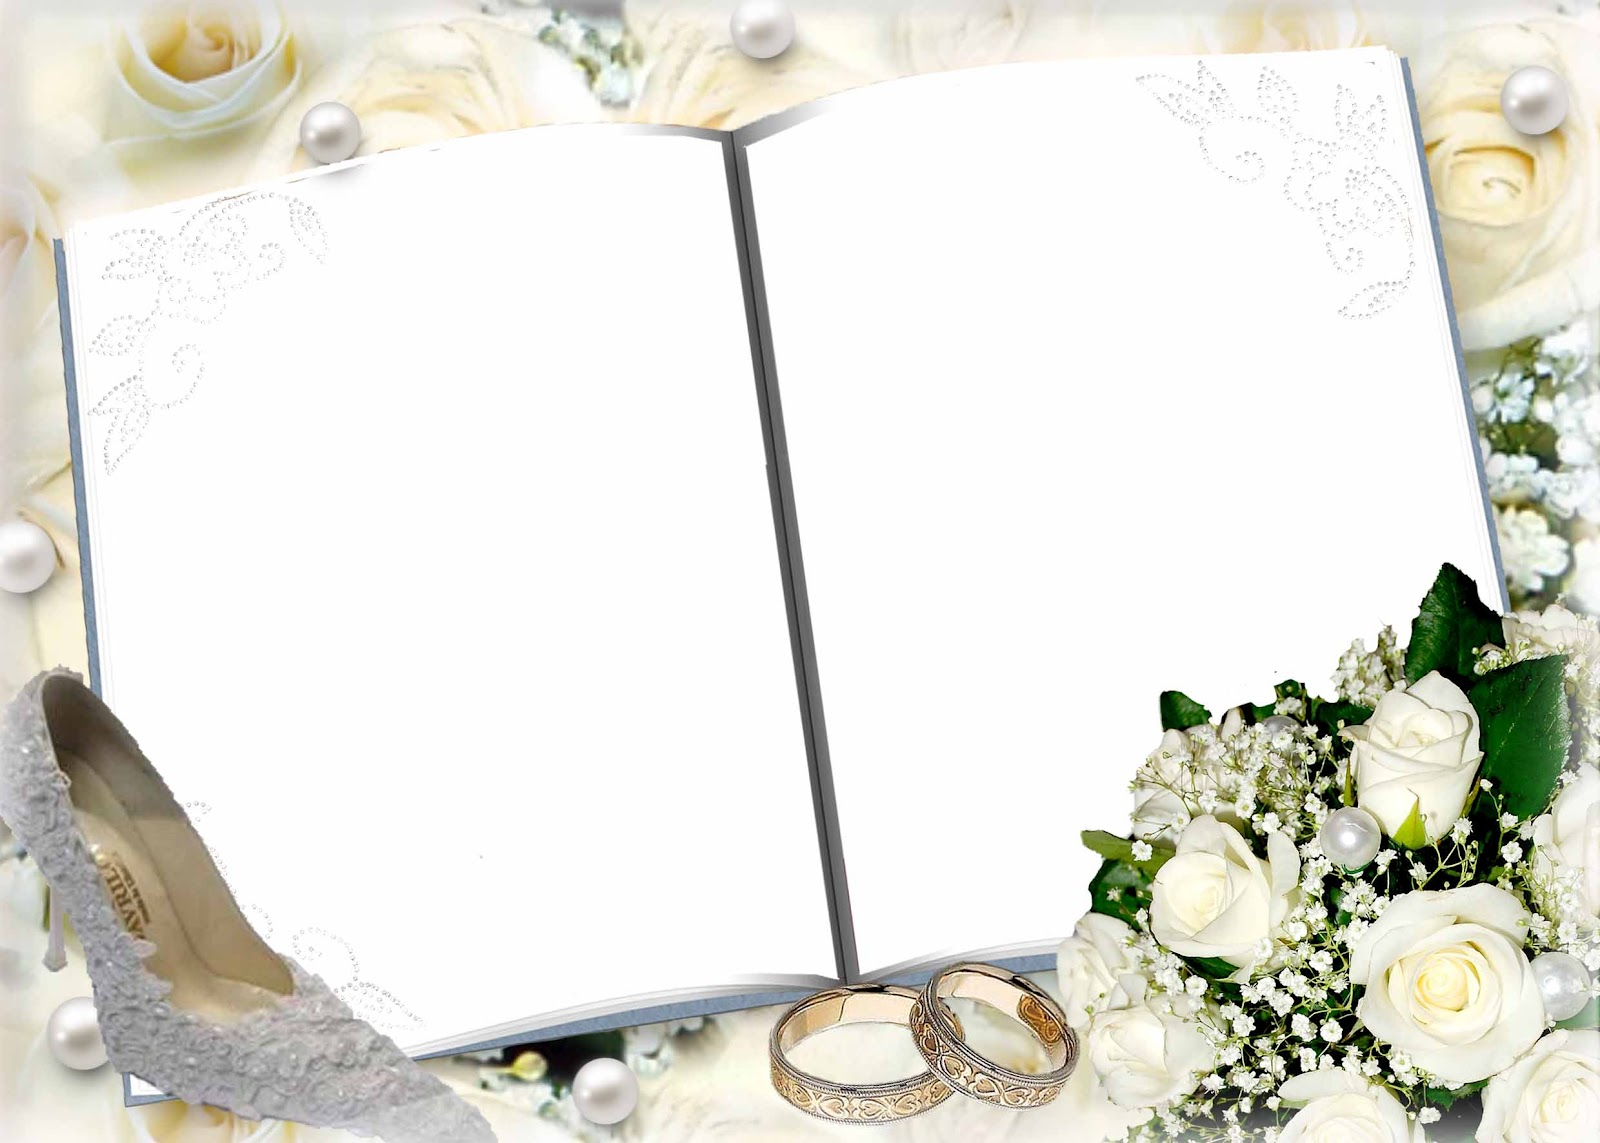 Wedding frame photoshop free download images